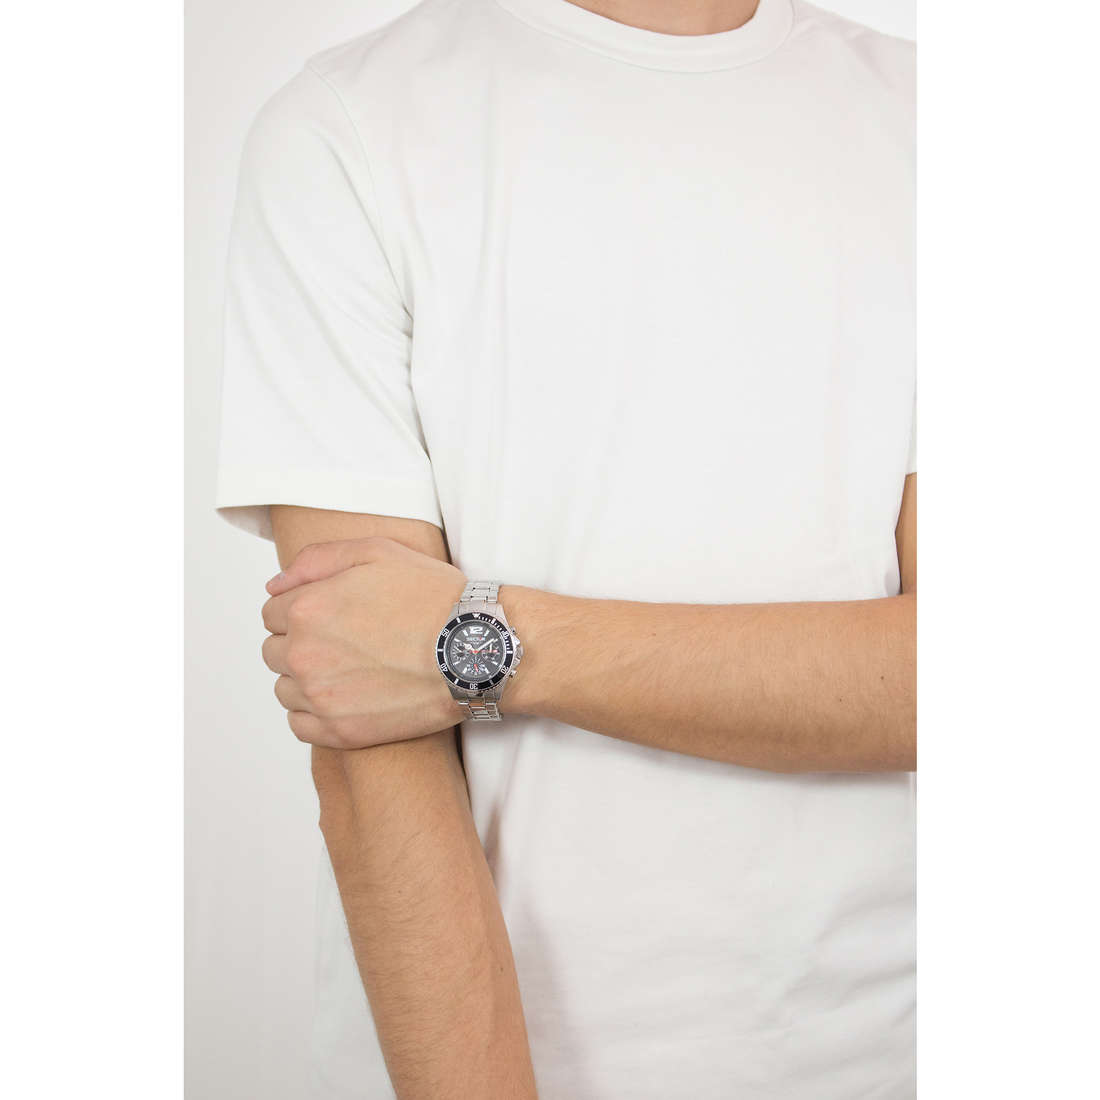 Sector multifonction 230 homme R3253161011 photo wearing